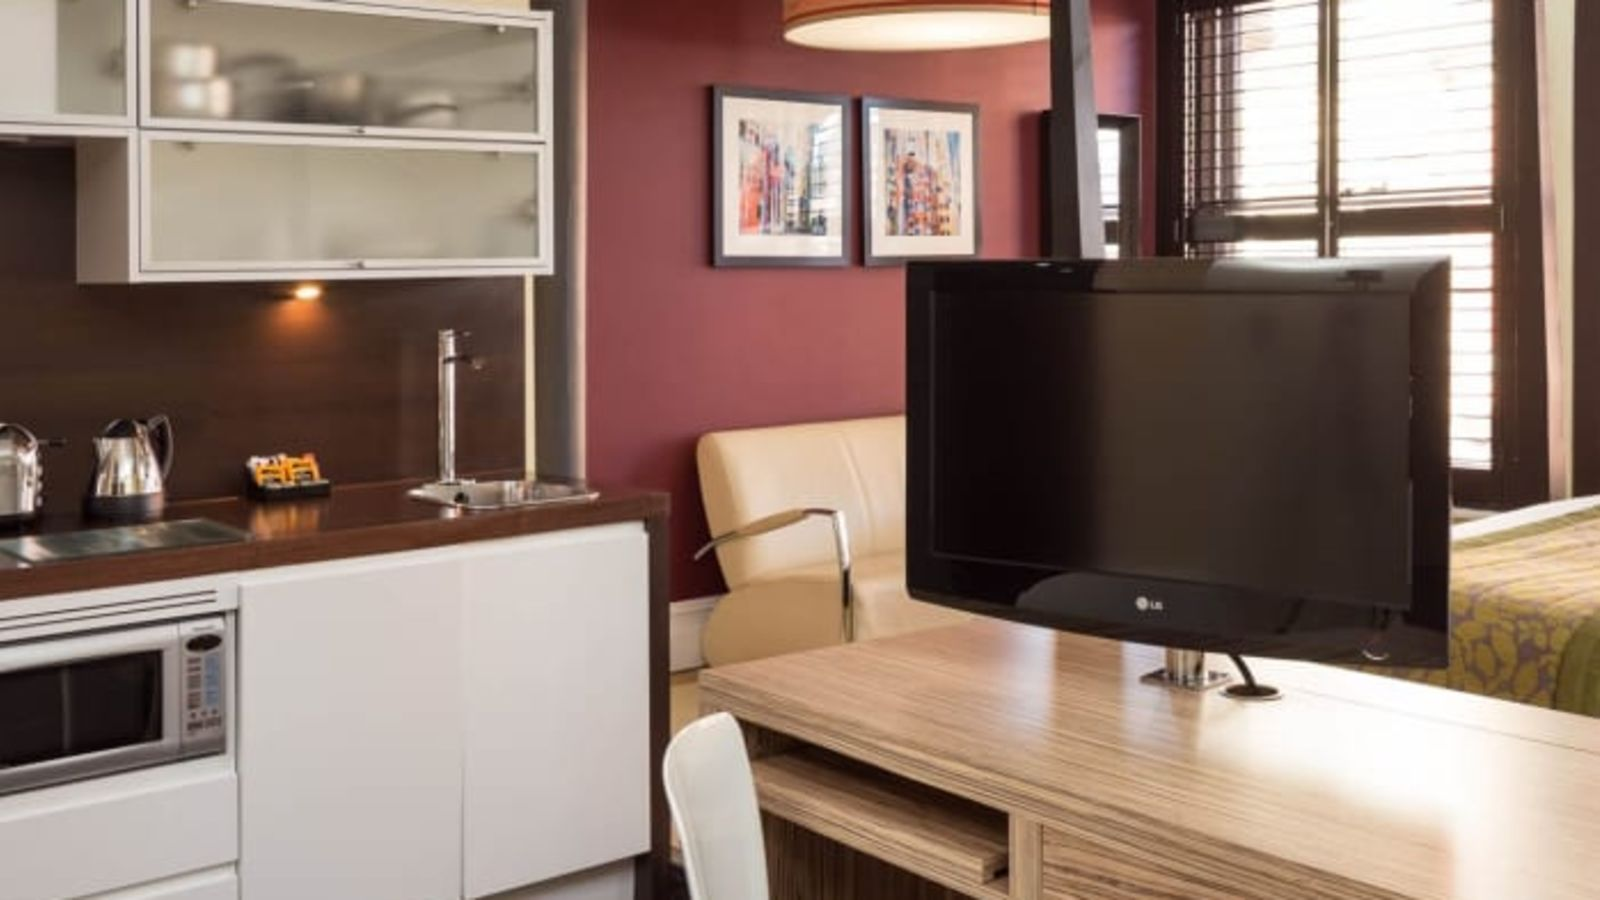 Grande Studio Student Apartment in Manchester. Fully Equipped Kitchen, desk and TV. IconInc @ Roomzzz